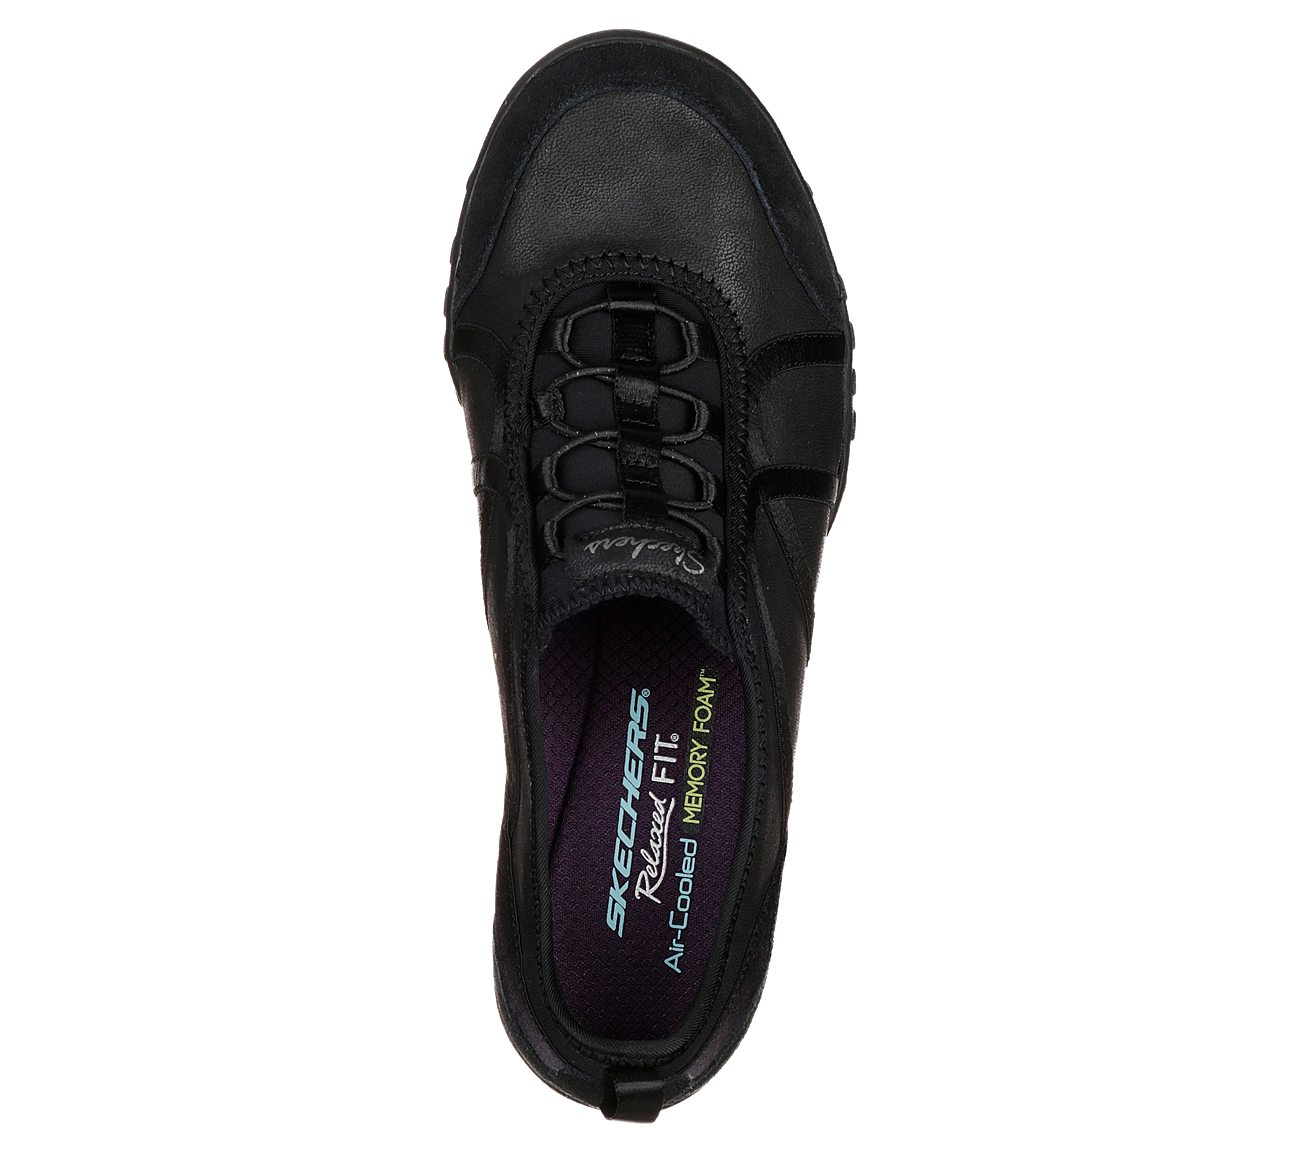 Zapatos SKECHERS RELAXED FIT con plantilla memory foam air cooled